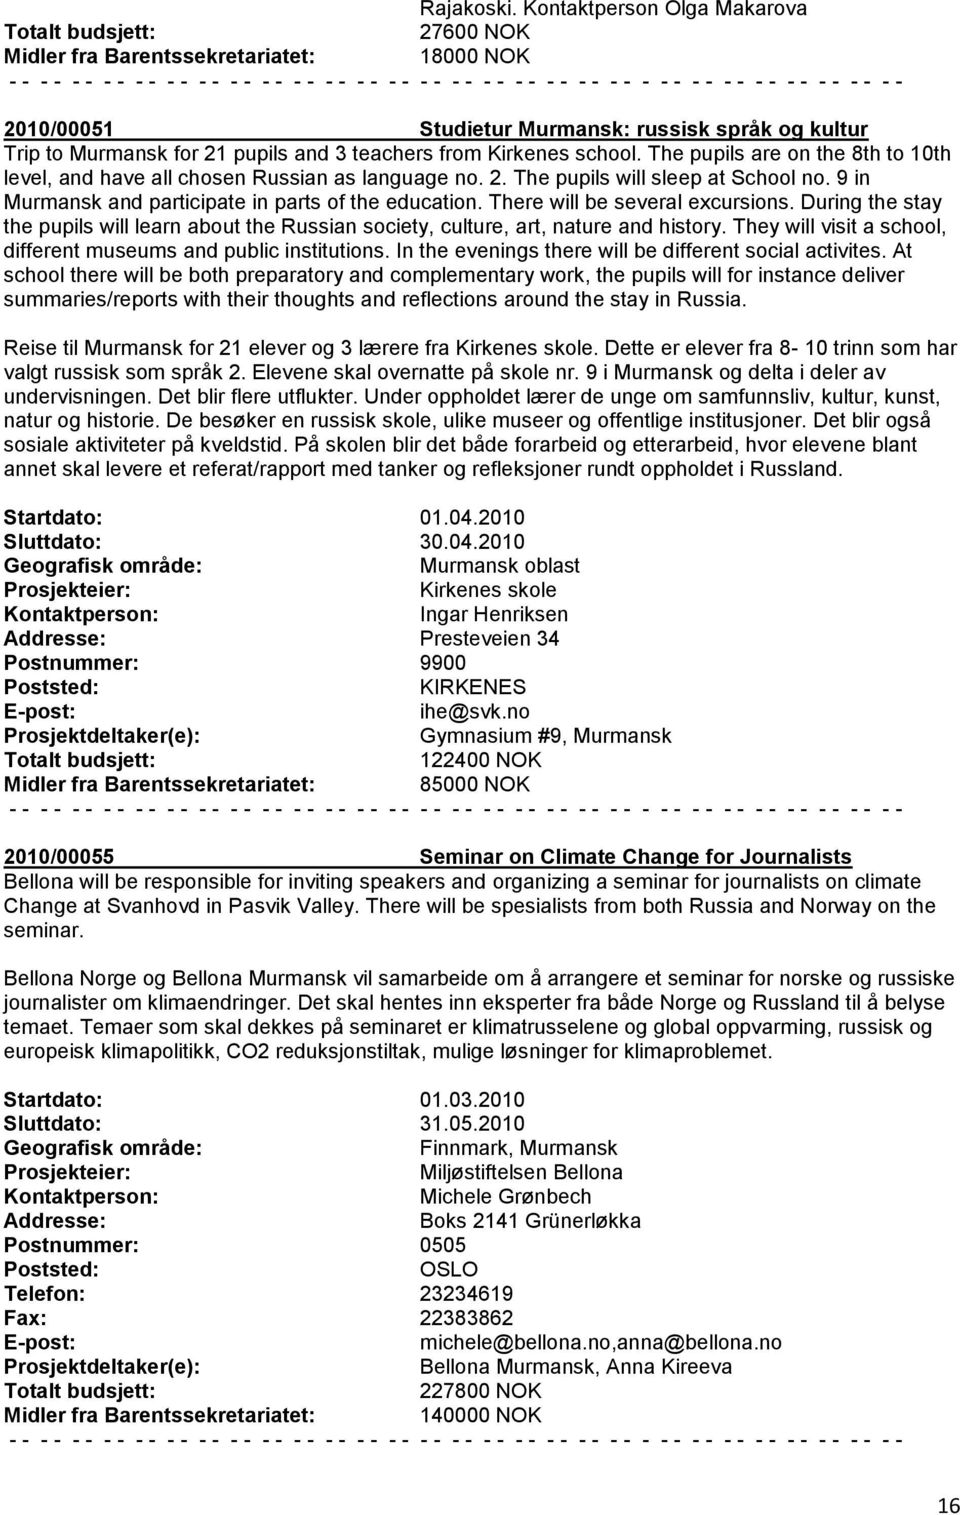 school. The pupils are on the 8th to 10th level, and have all chosen Russian as language no. 2. The pupils will sleep at School no. 9 in Murmansk and participate in parts of the education.